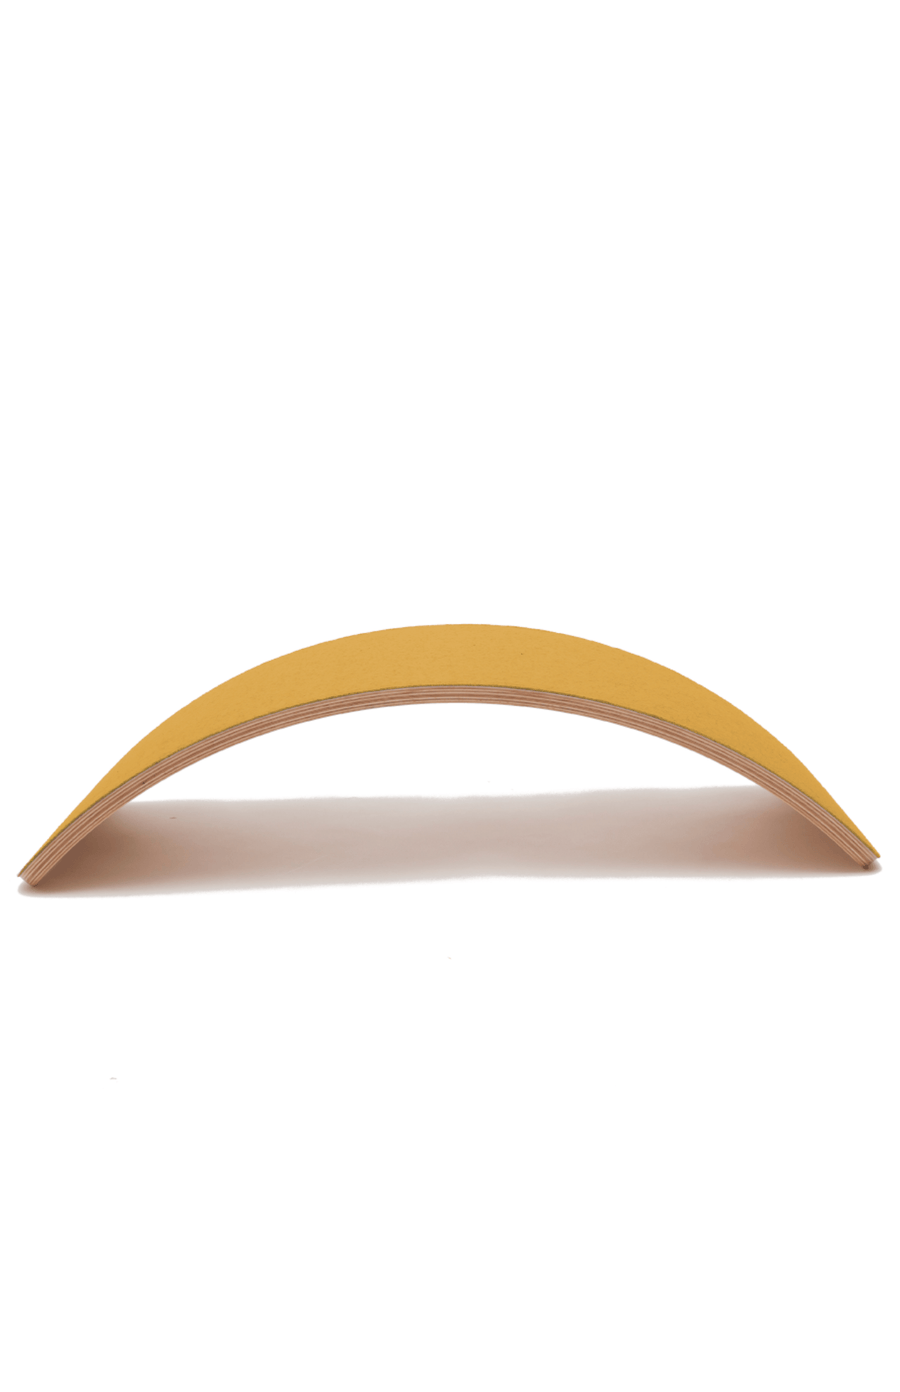 Wobbel Pro Transparent Lacquer With Felt - Mustard